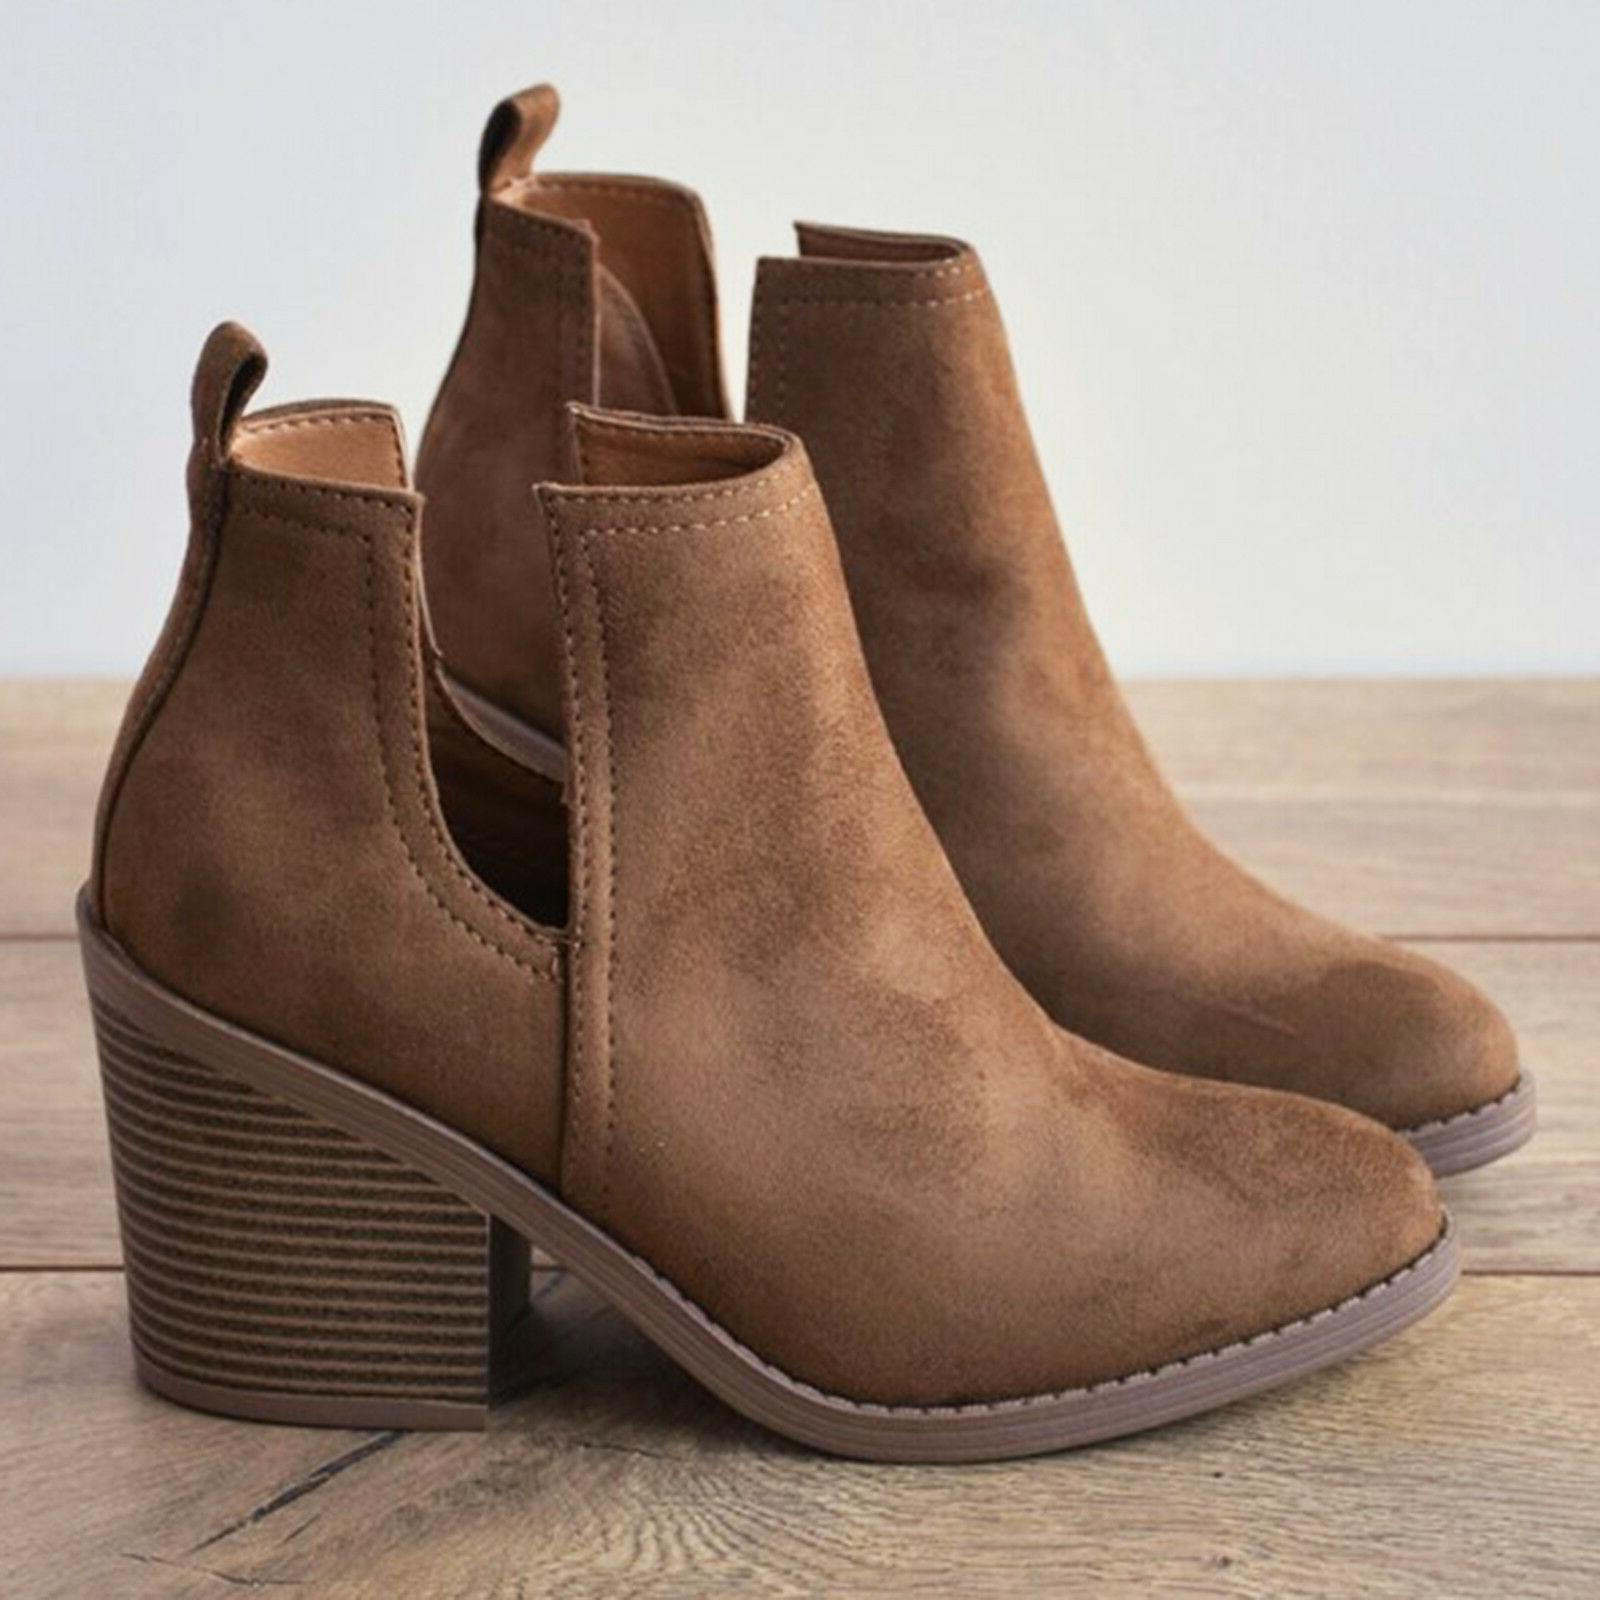 Womens Heels Medium Round Toe Ankle Height Fall Casual Forma